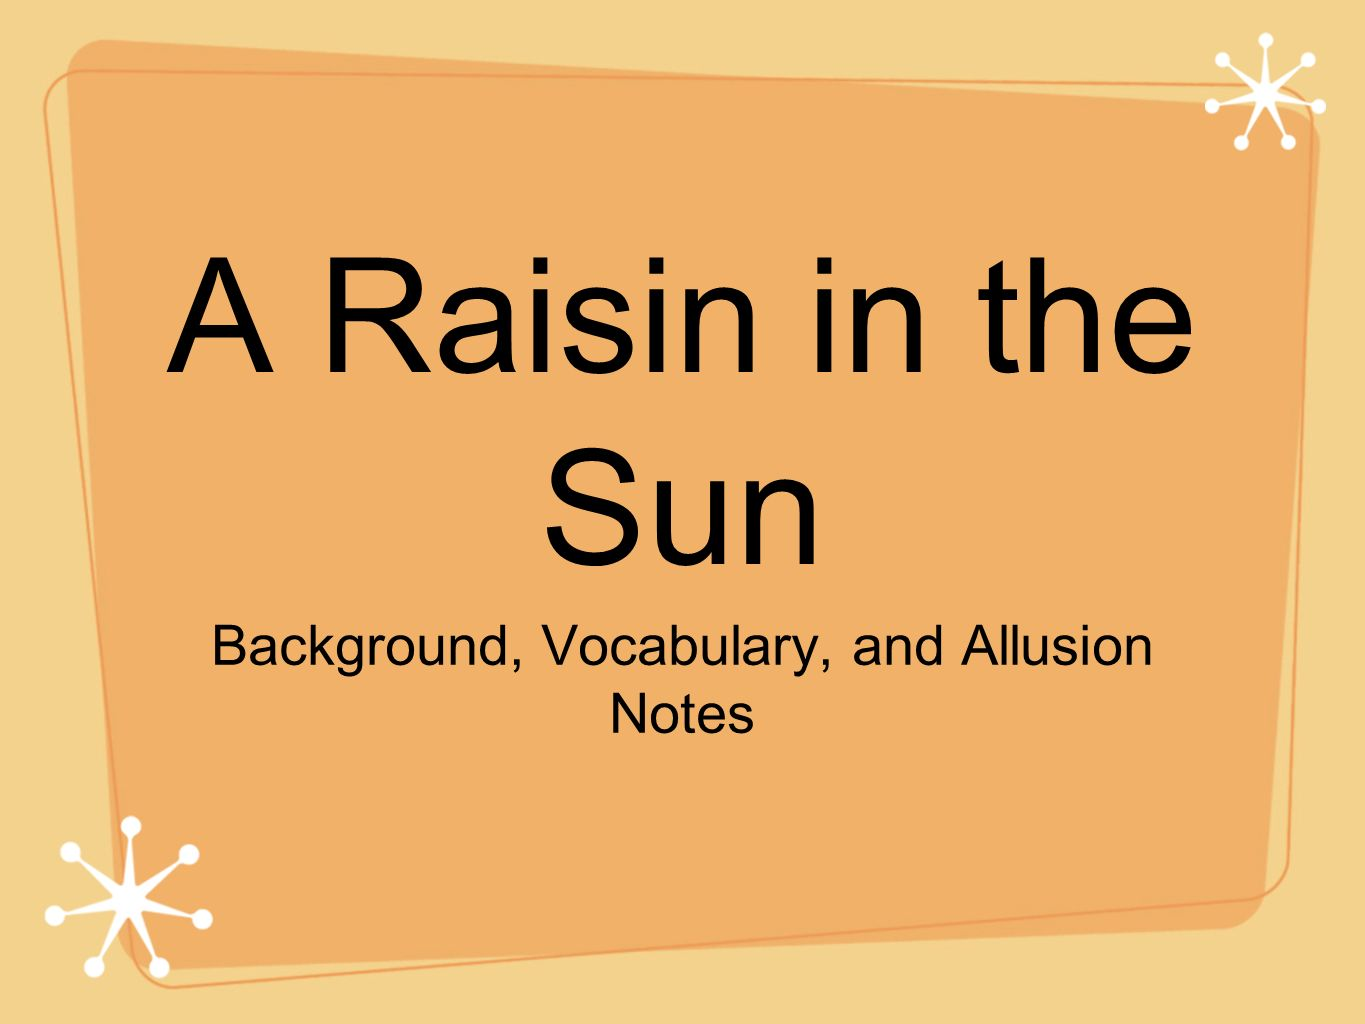 Background vocabulary and allusion notes ppt download background vocabulary and allusion notes biocorpaavc